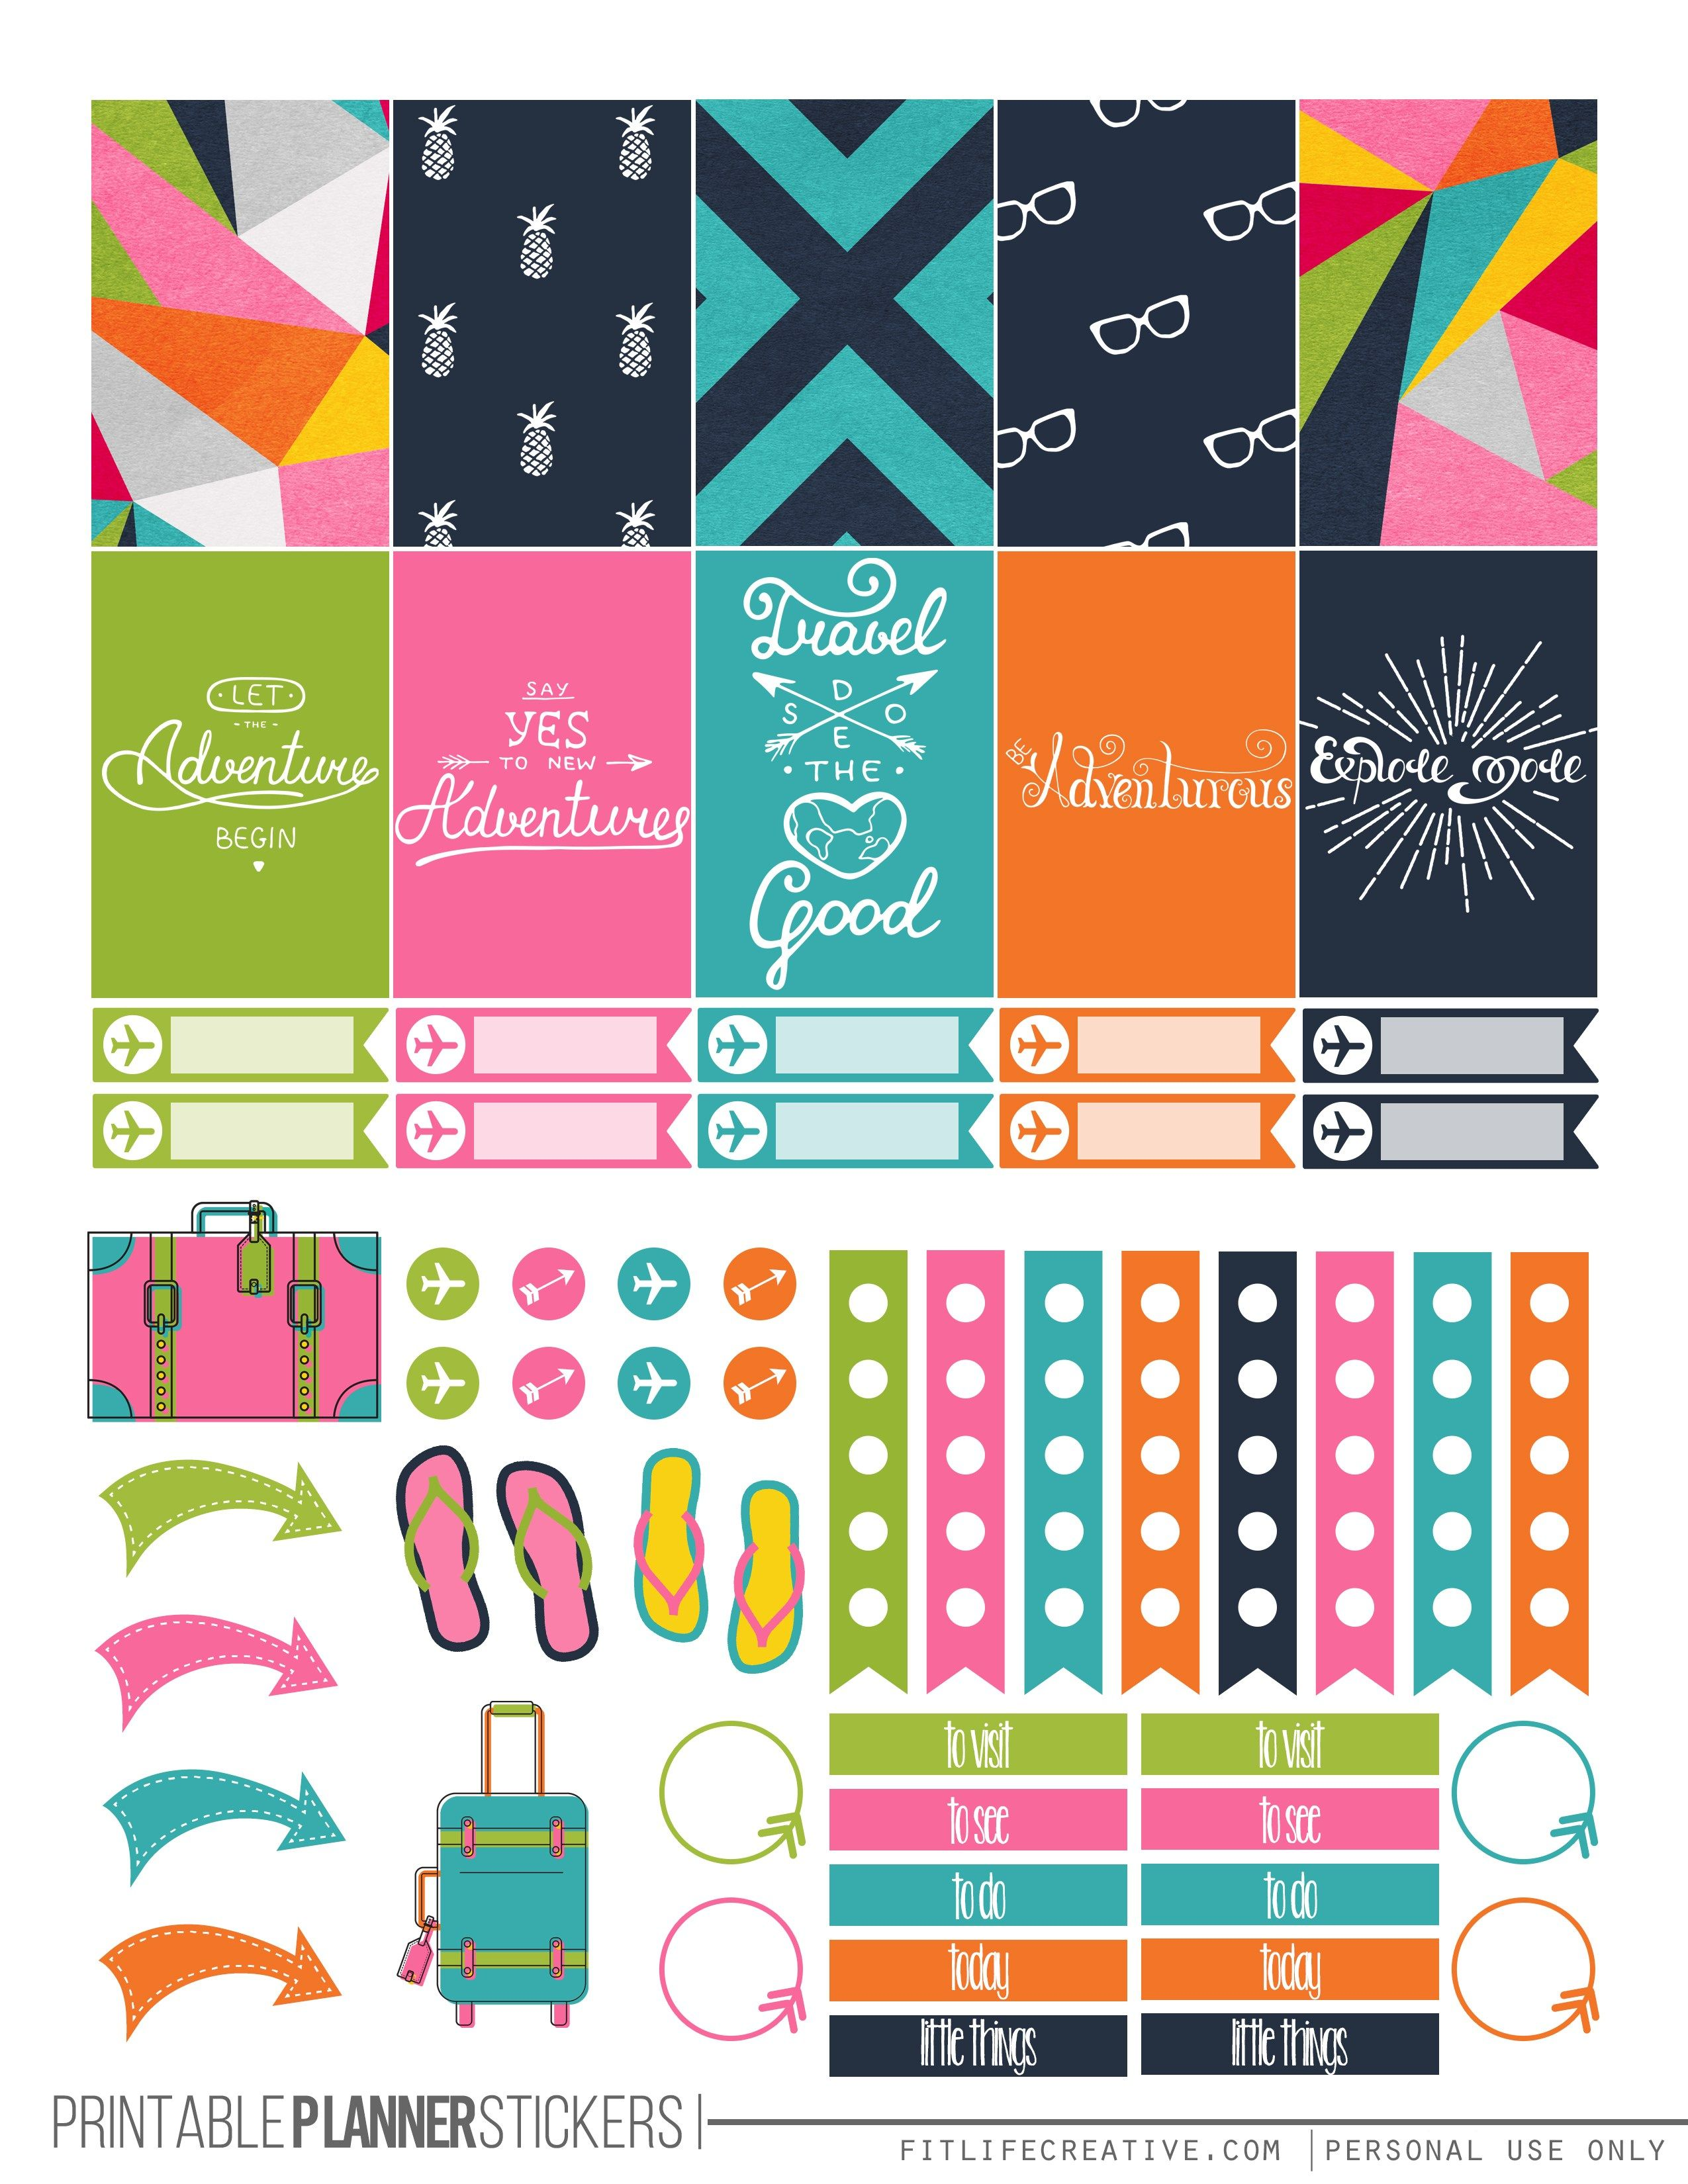 photograph relating to Happy Planner Stickers Printable named Generate Planner Stickers Planners and Cost-free Printable